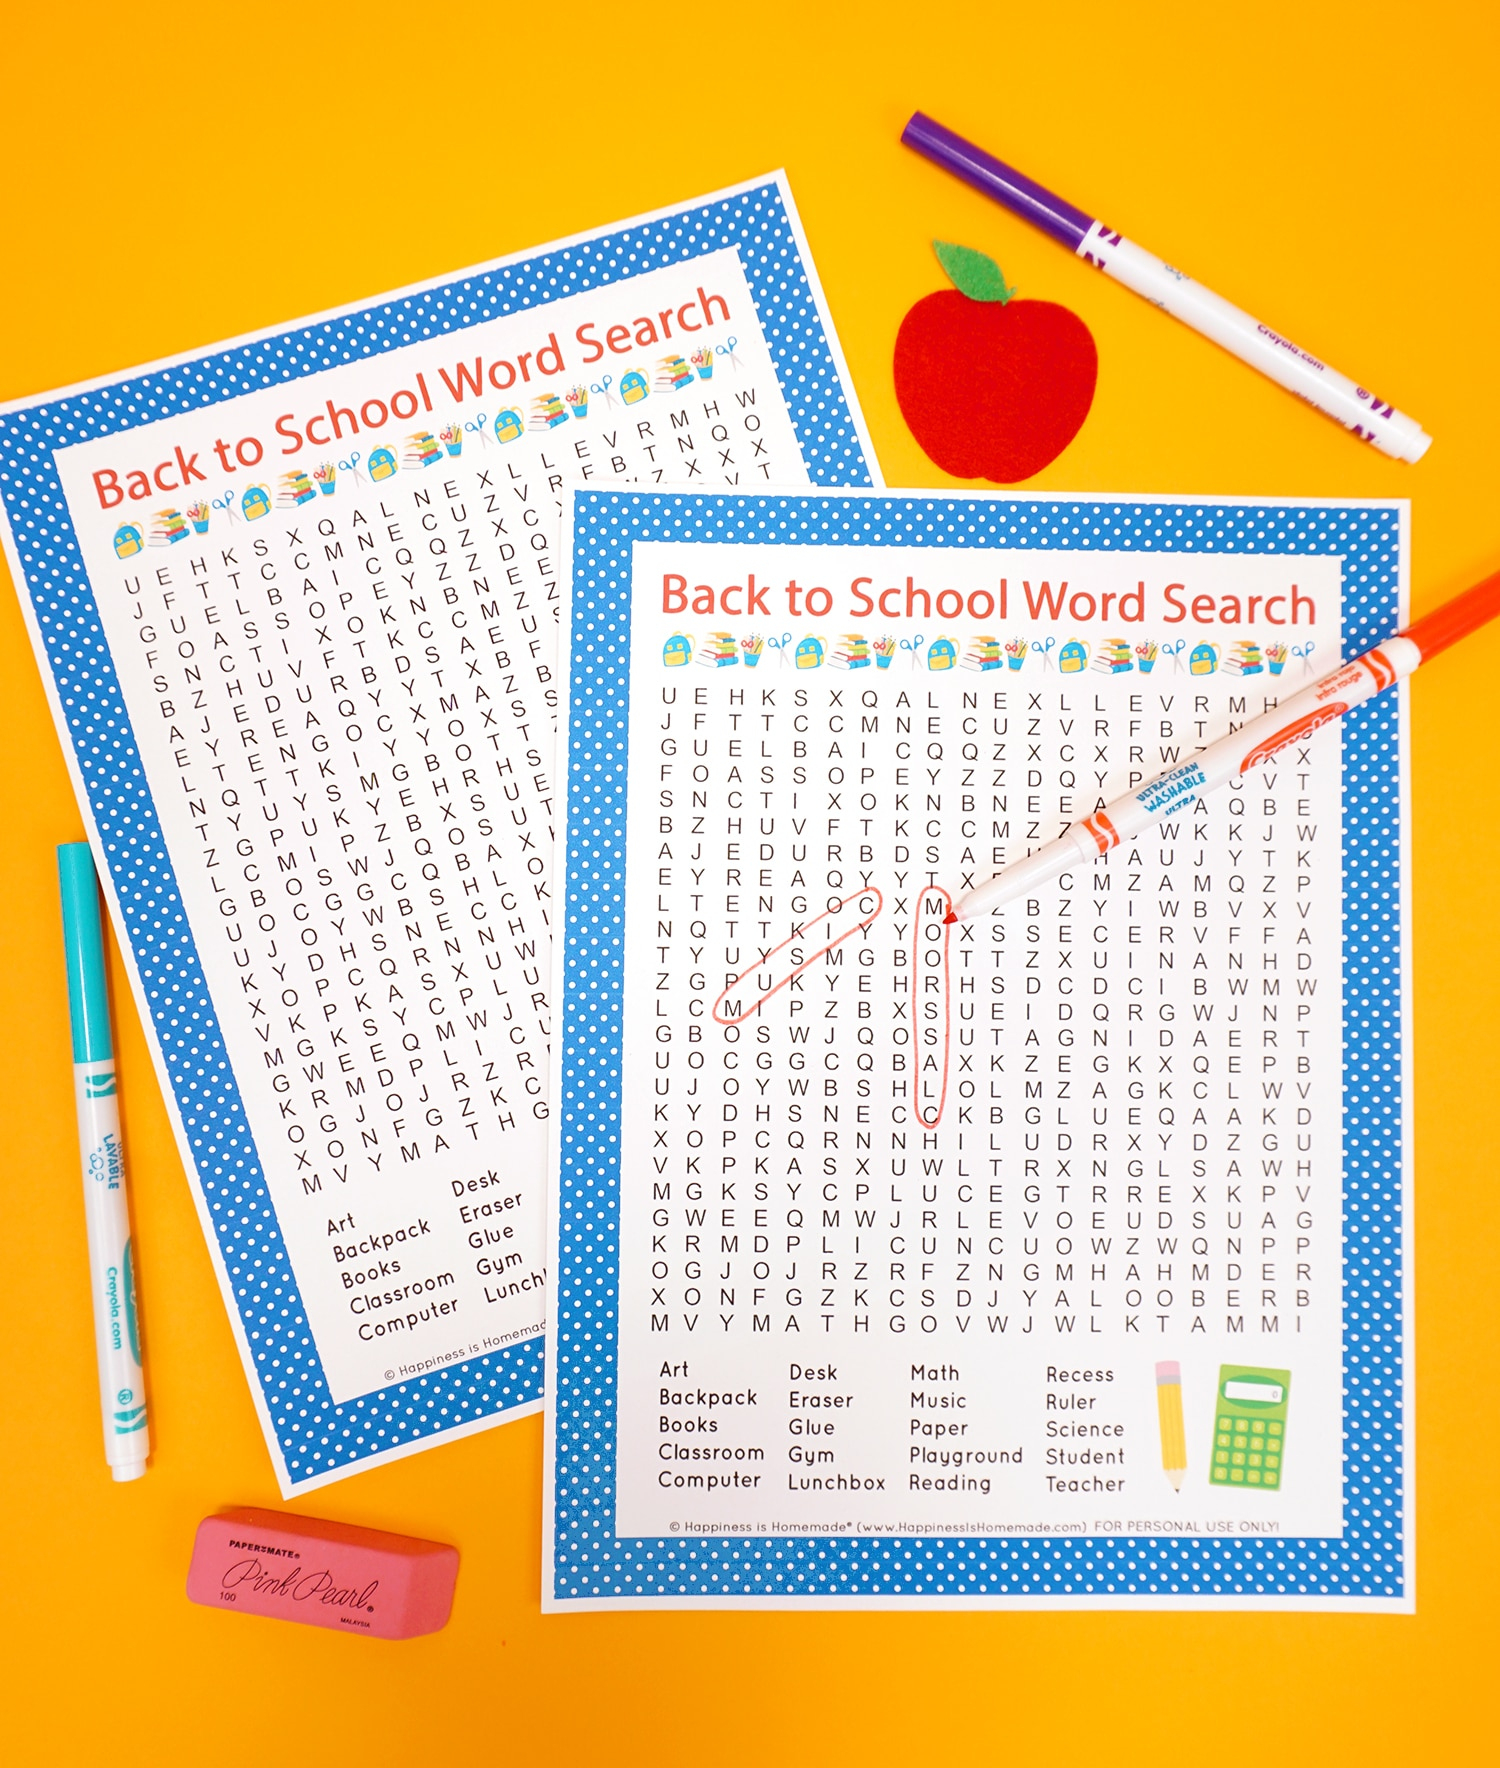 Back To School Word Search Printable - Happiness Is Homemade